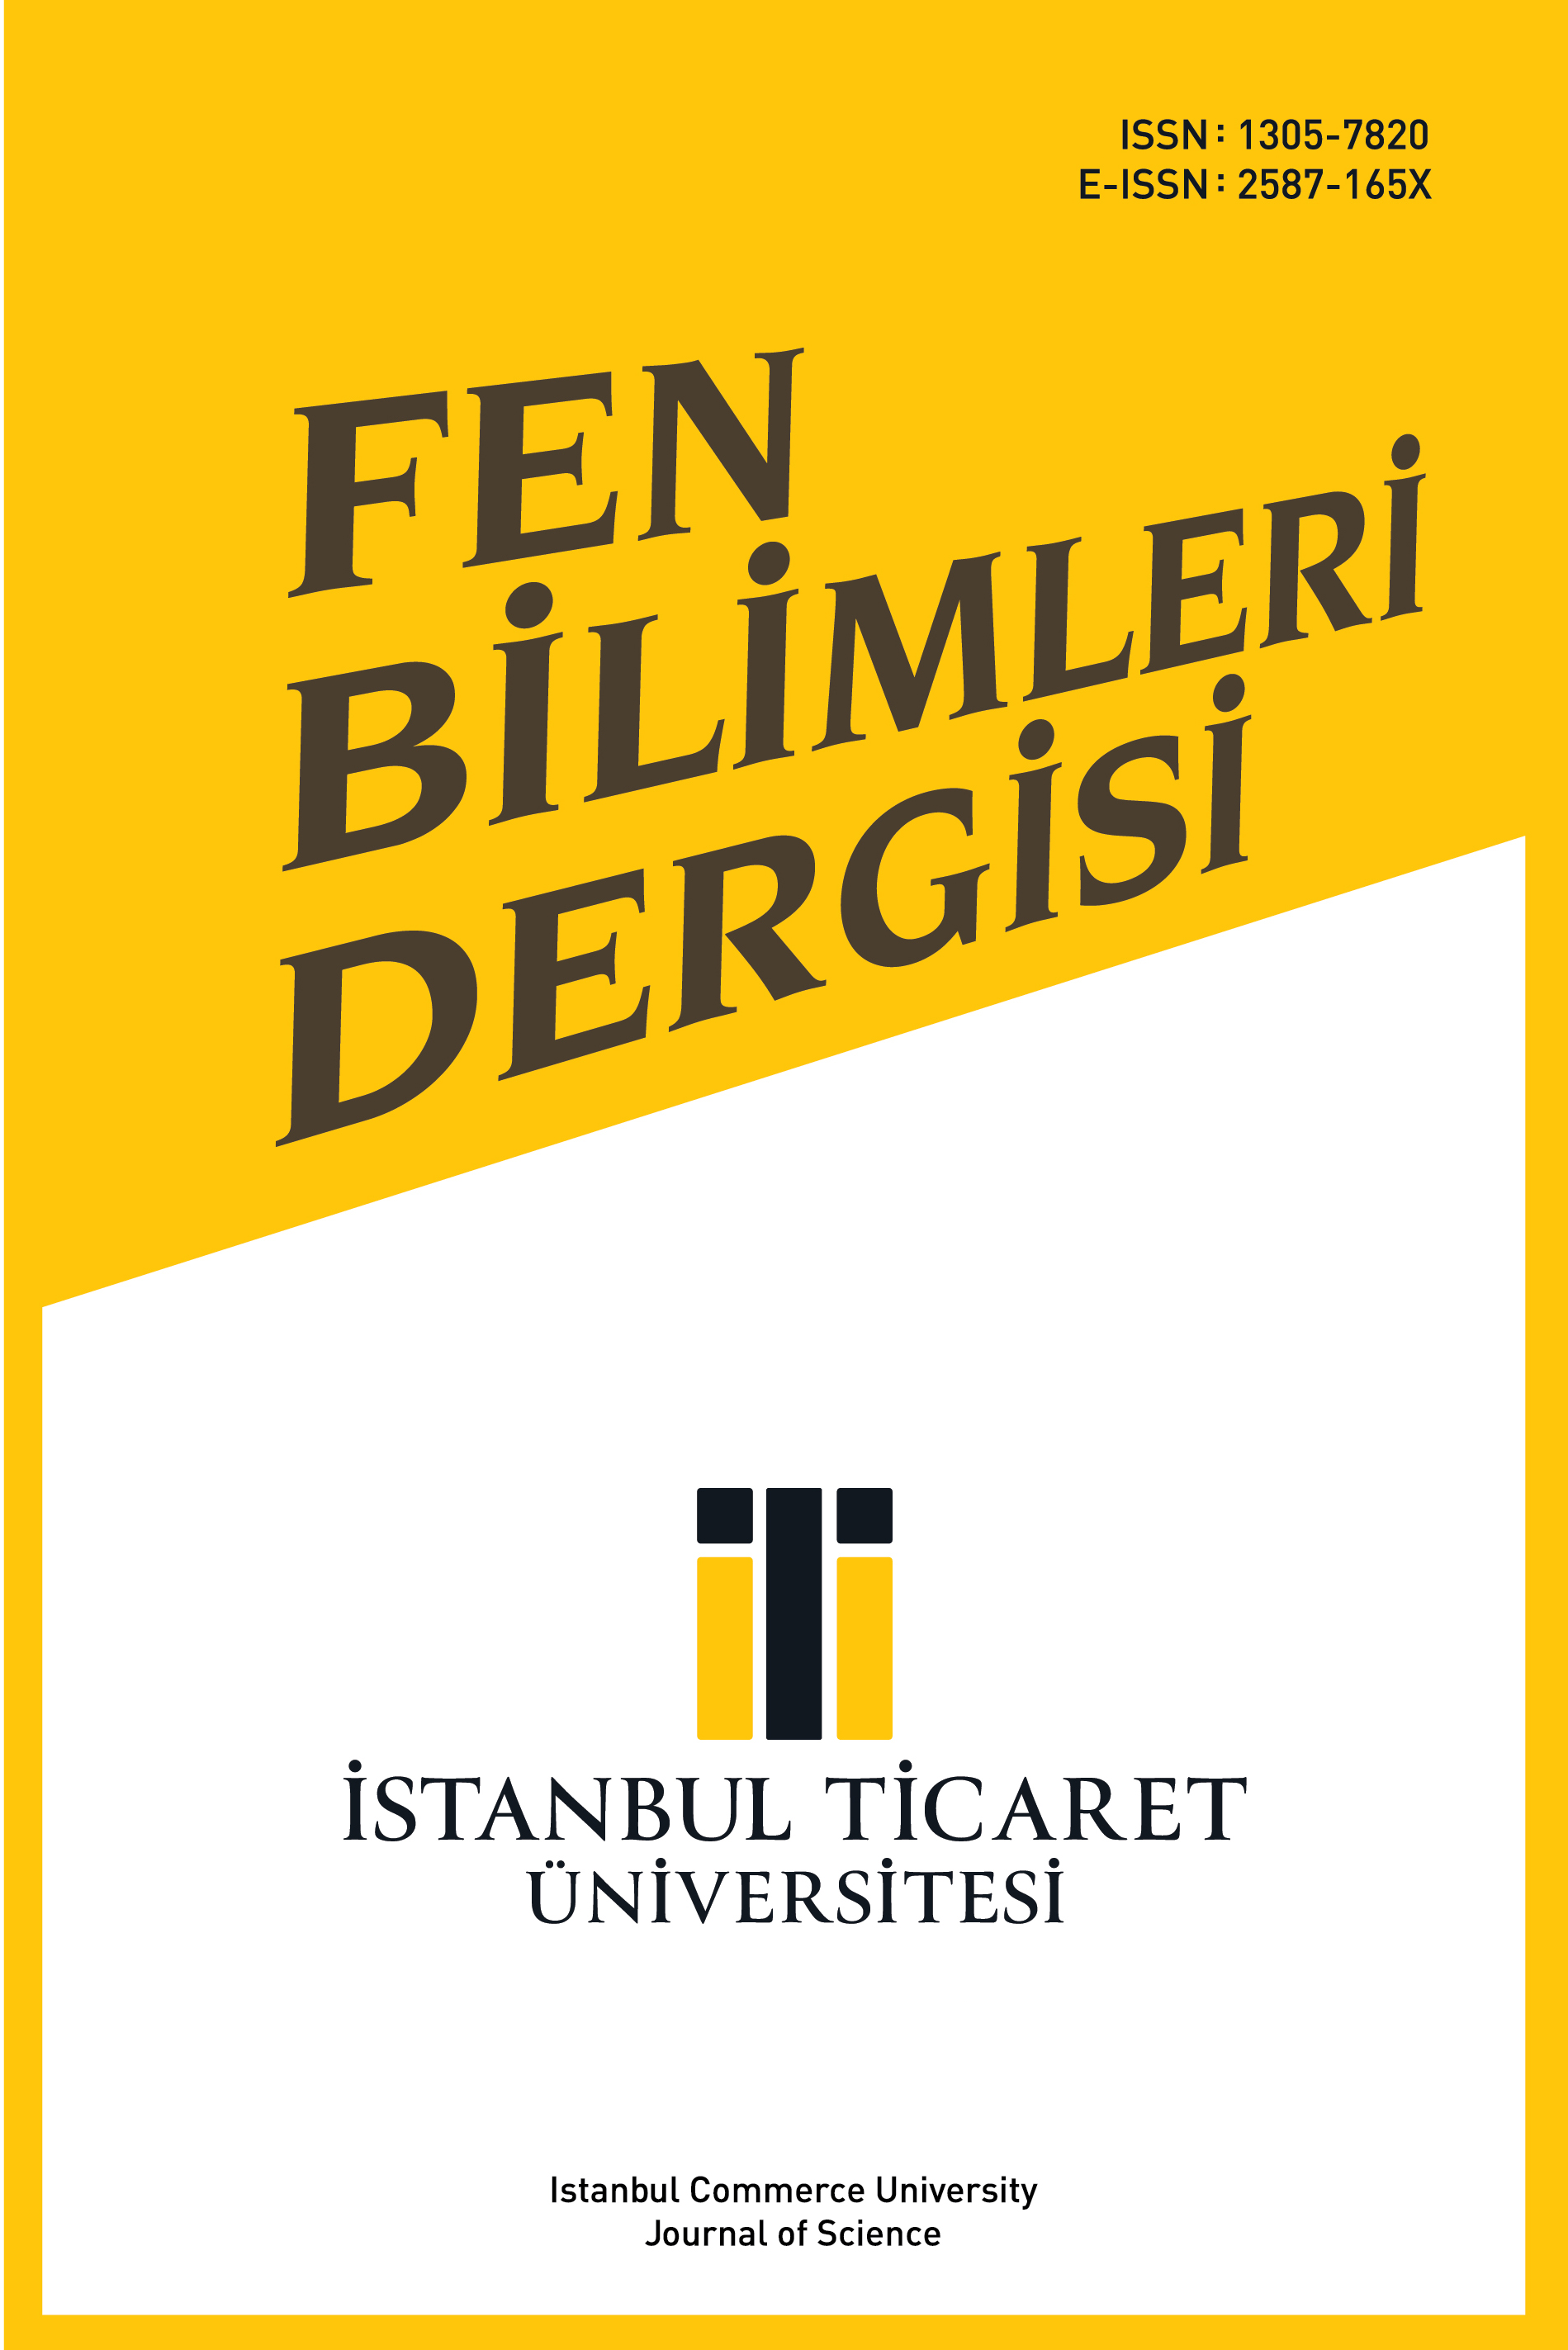 İstanbul Commerce University Journal of Science